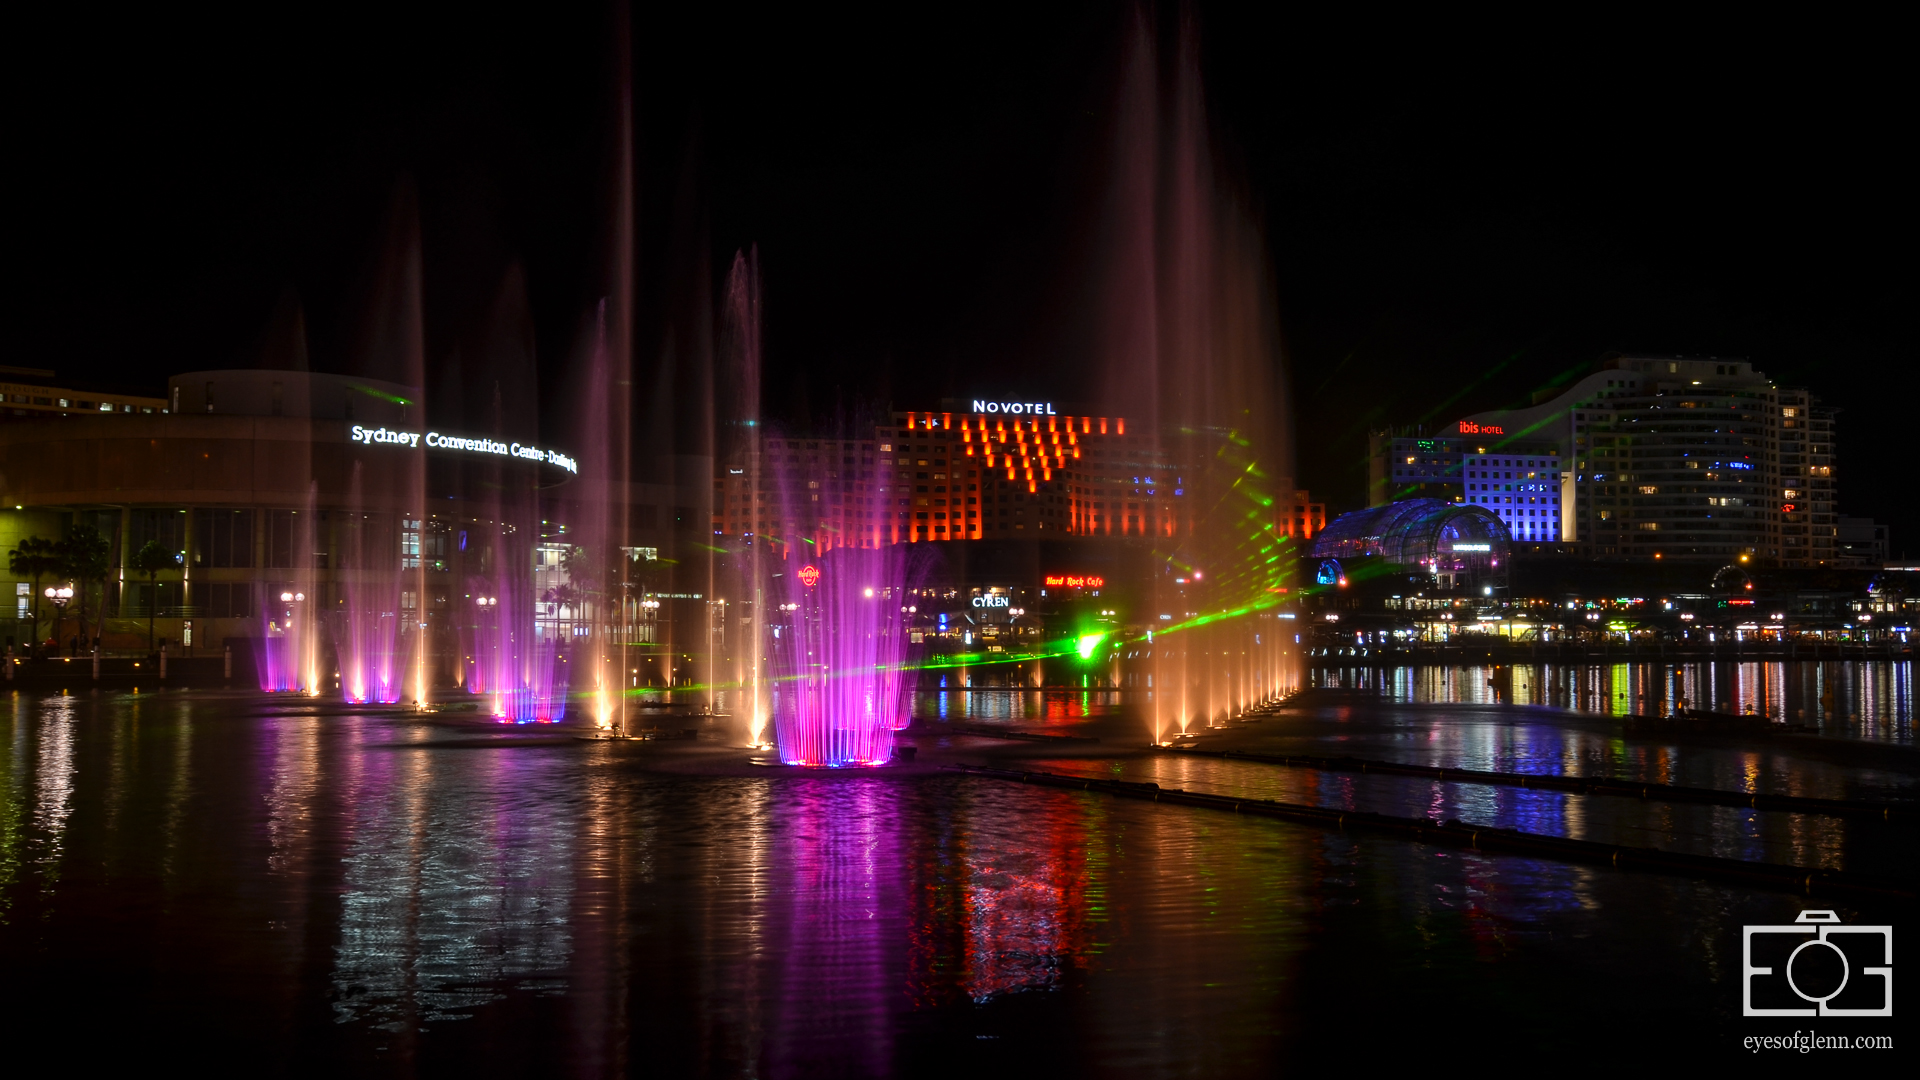 Darling Harbour, Vivid Sydney 2013